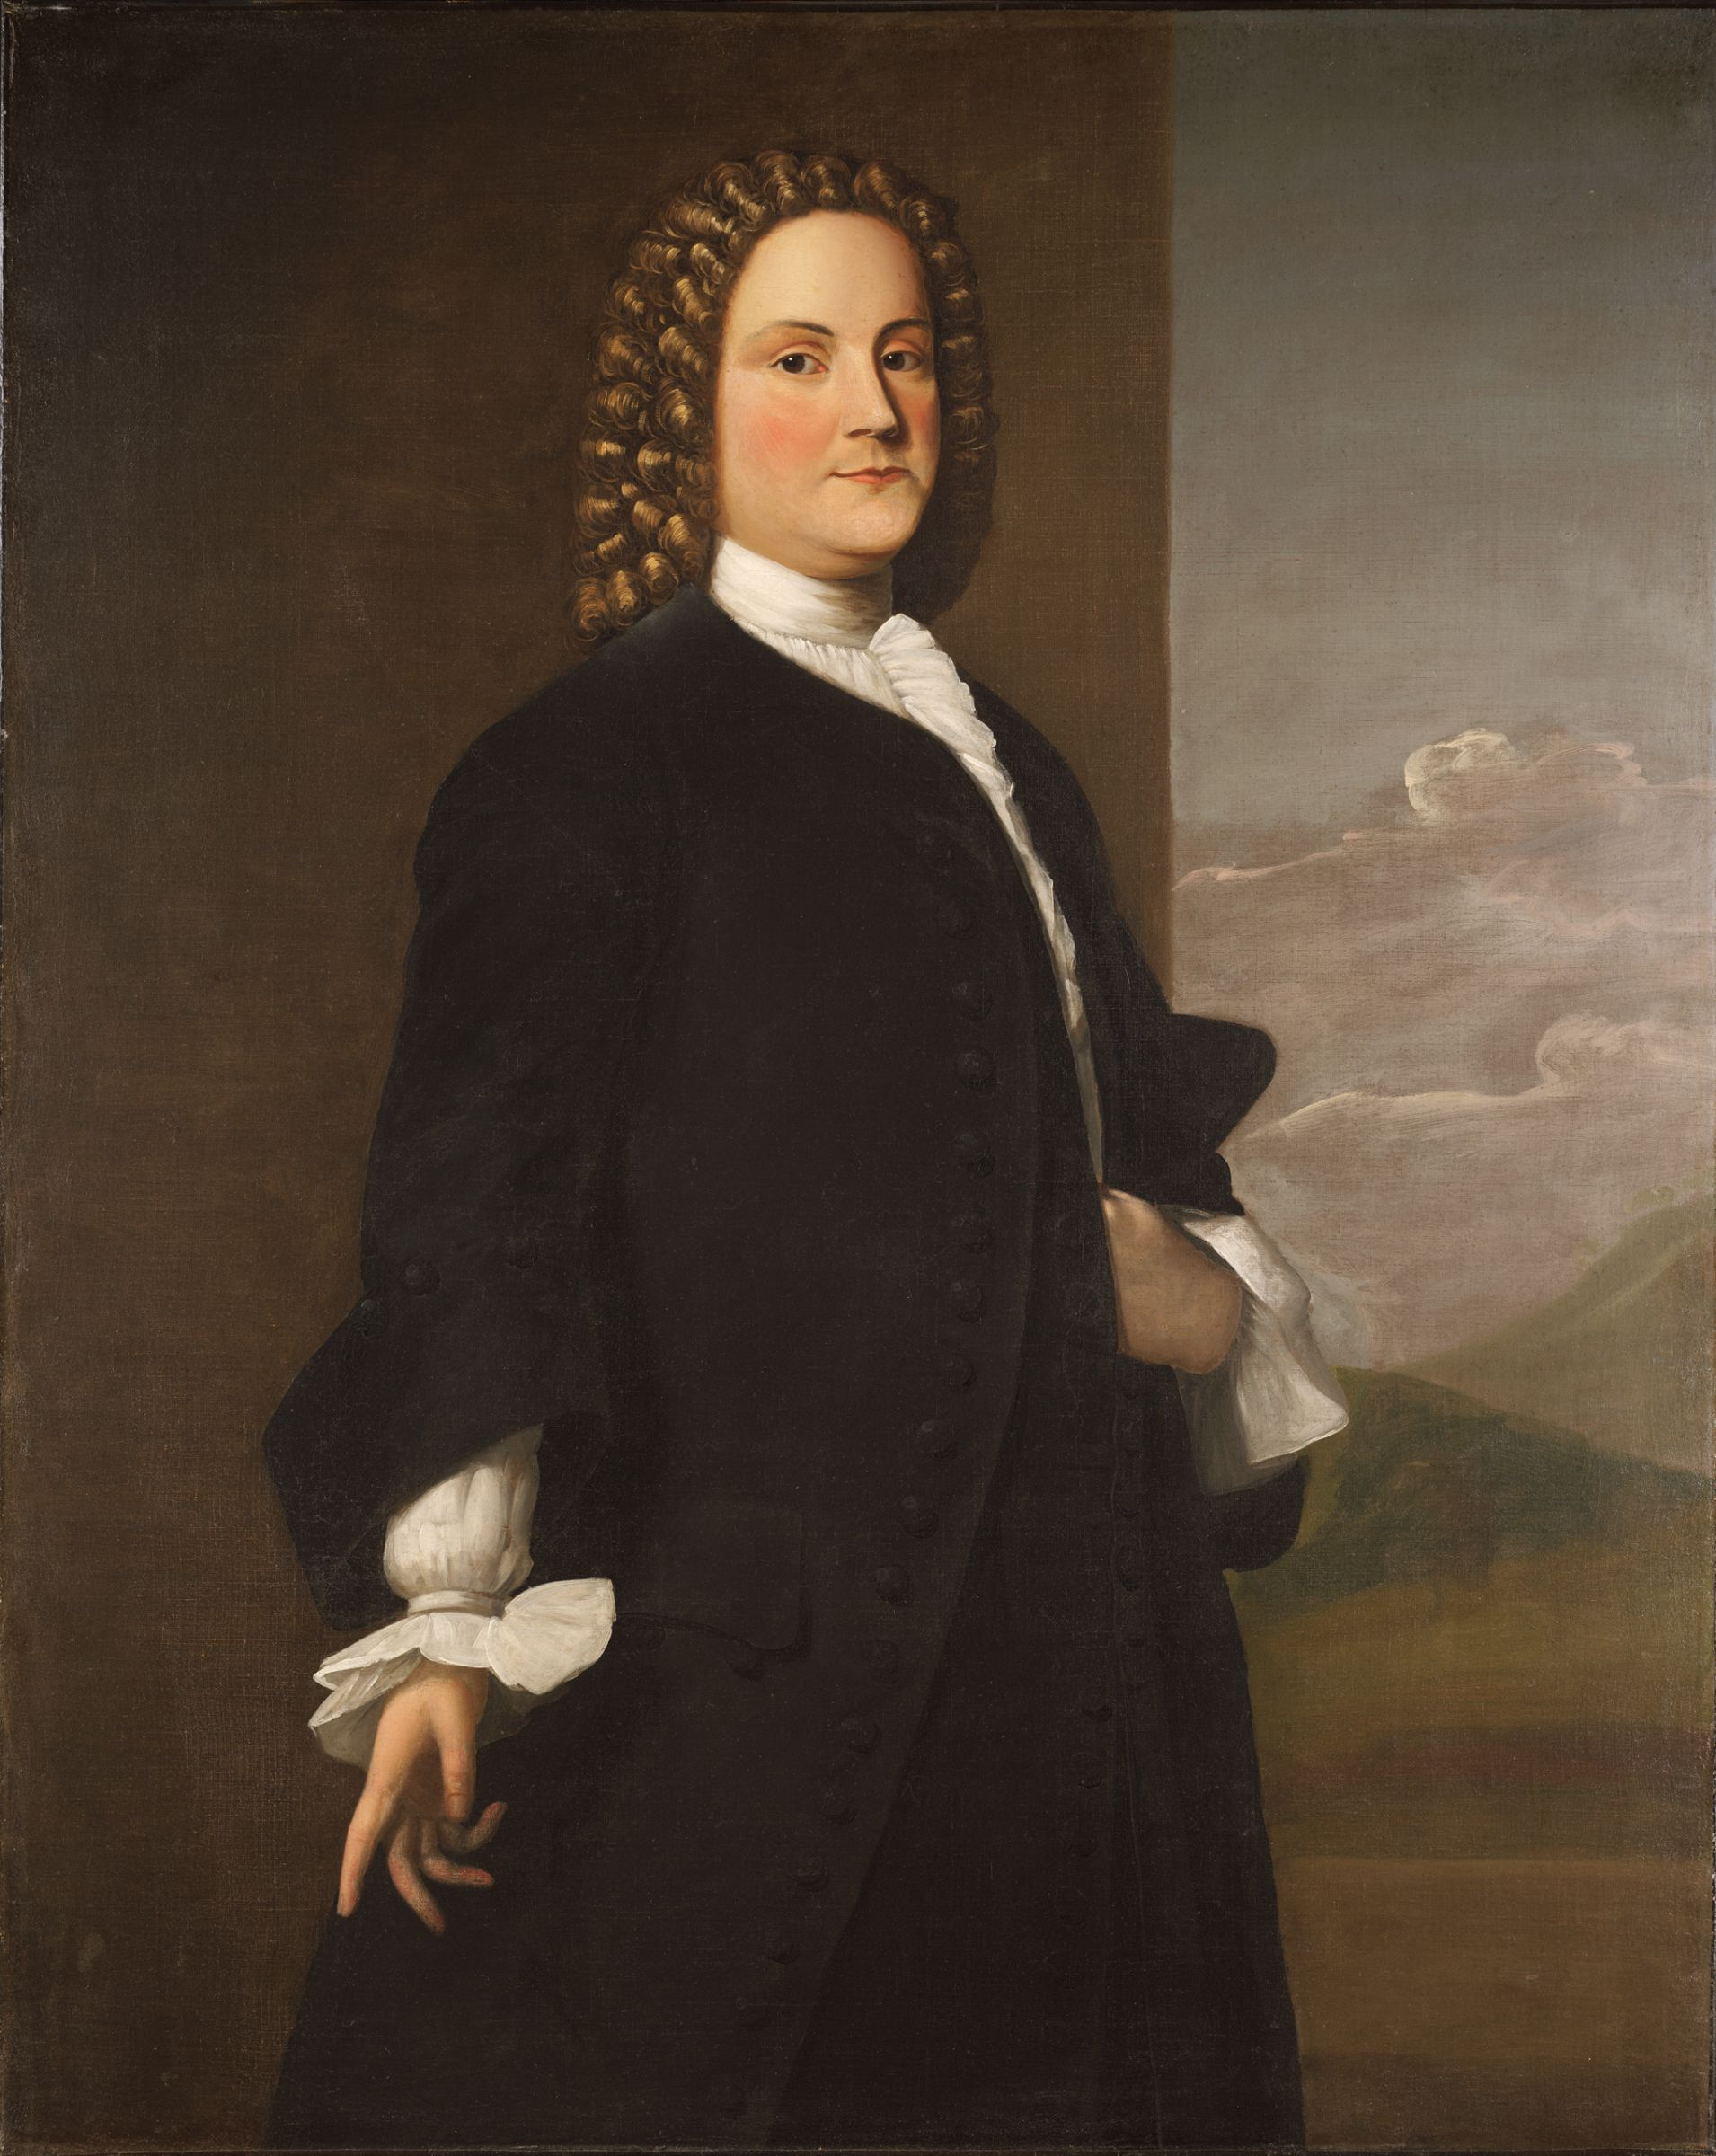 ben franklin bbw dating site Benjamin franklin frs frse (january 17, 1706 [os january 6, 1705] – april 17, 1790) was an american polymath and one of the founding fathers of the united states.